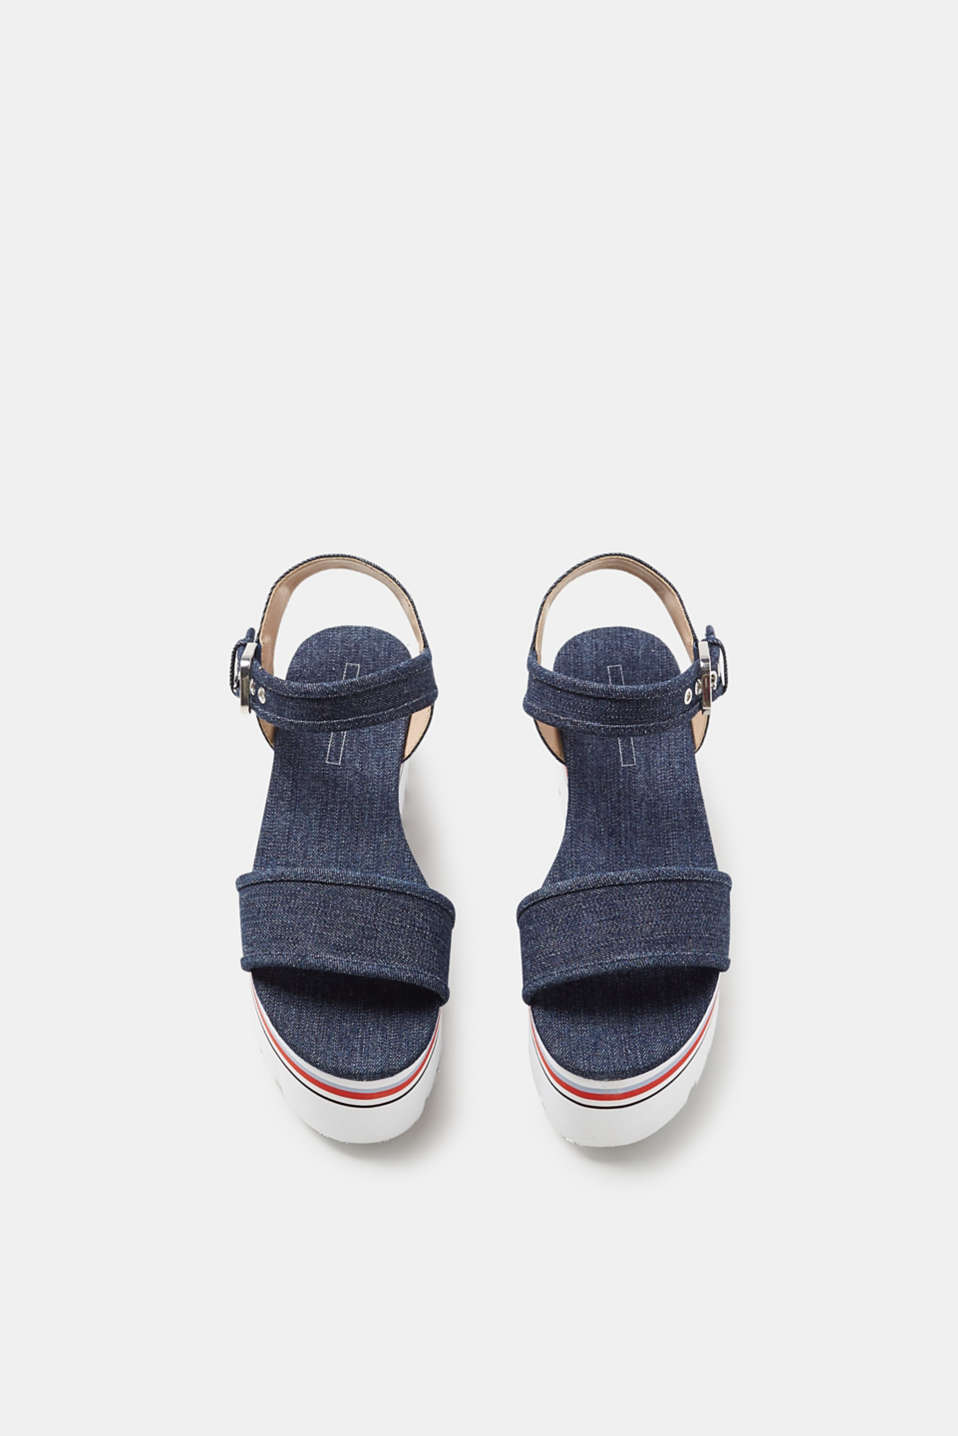 Platform sandals in robust denim